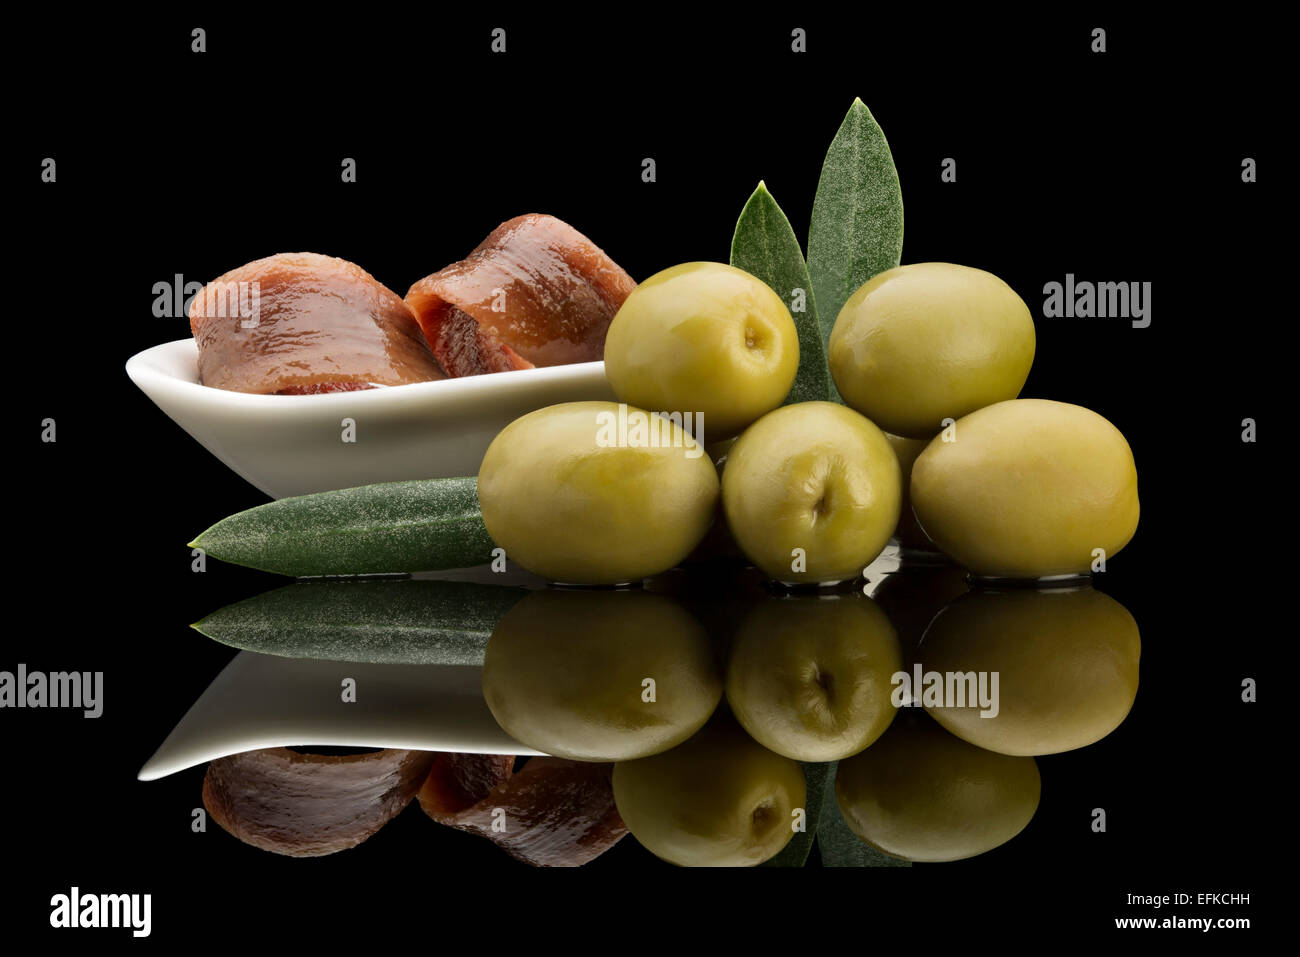 Pickled green olives stuffed with anchovies - Stock Image